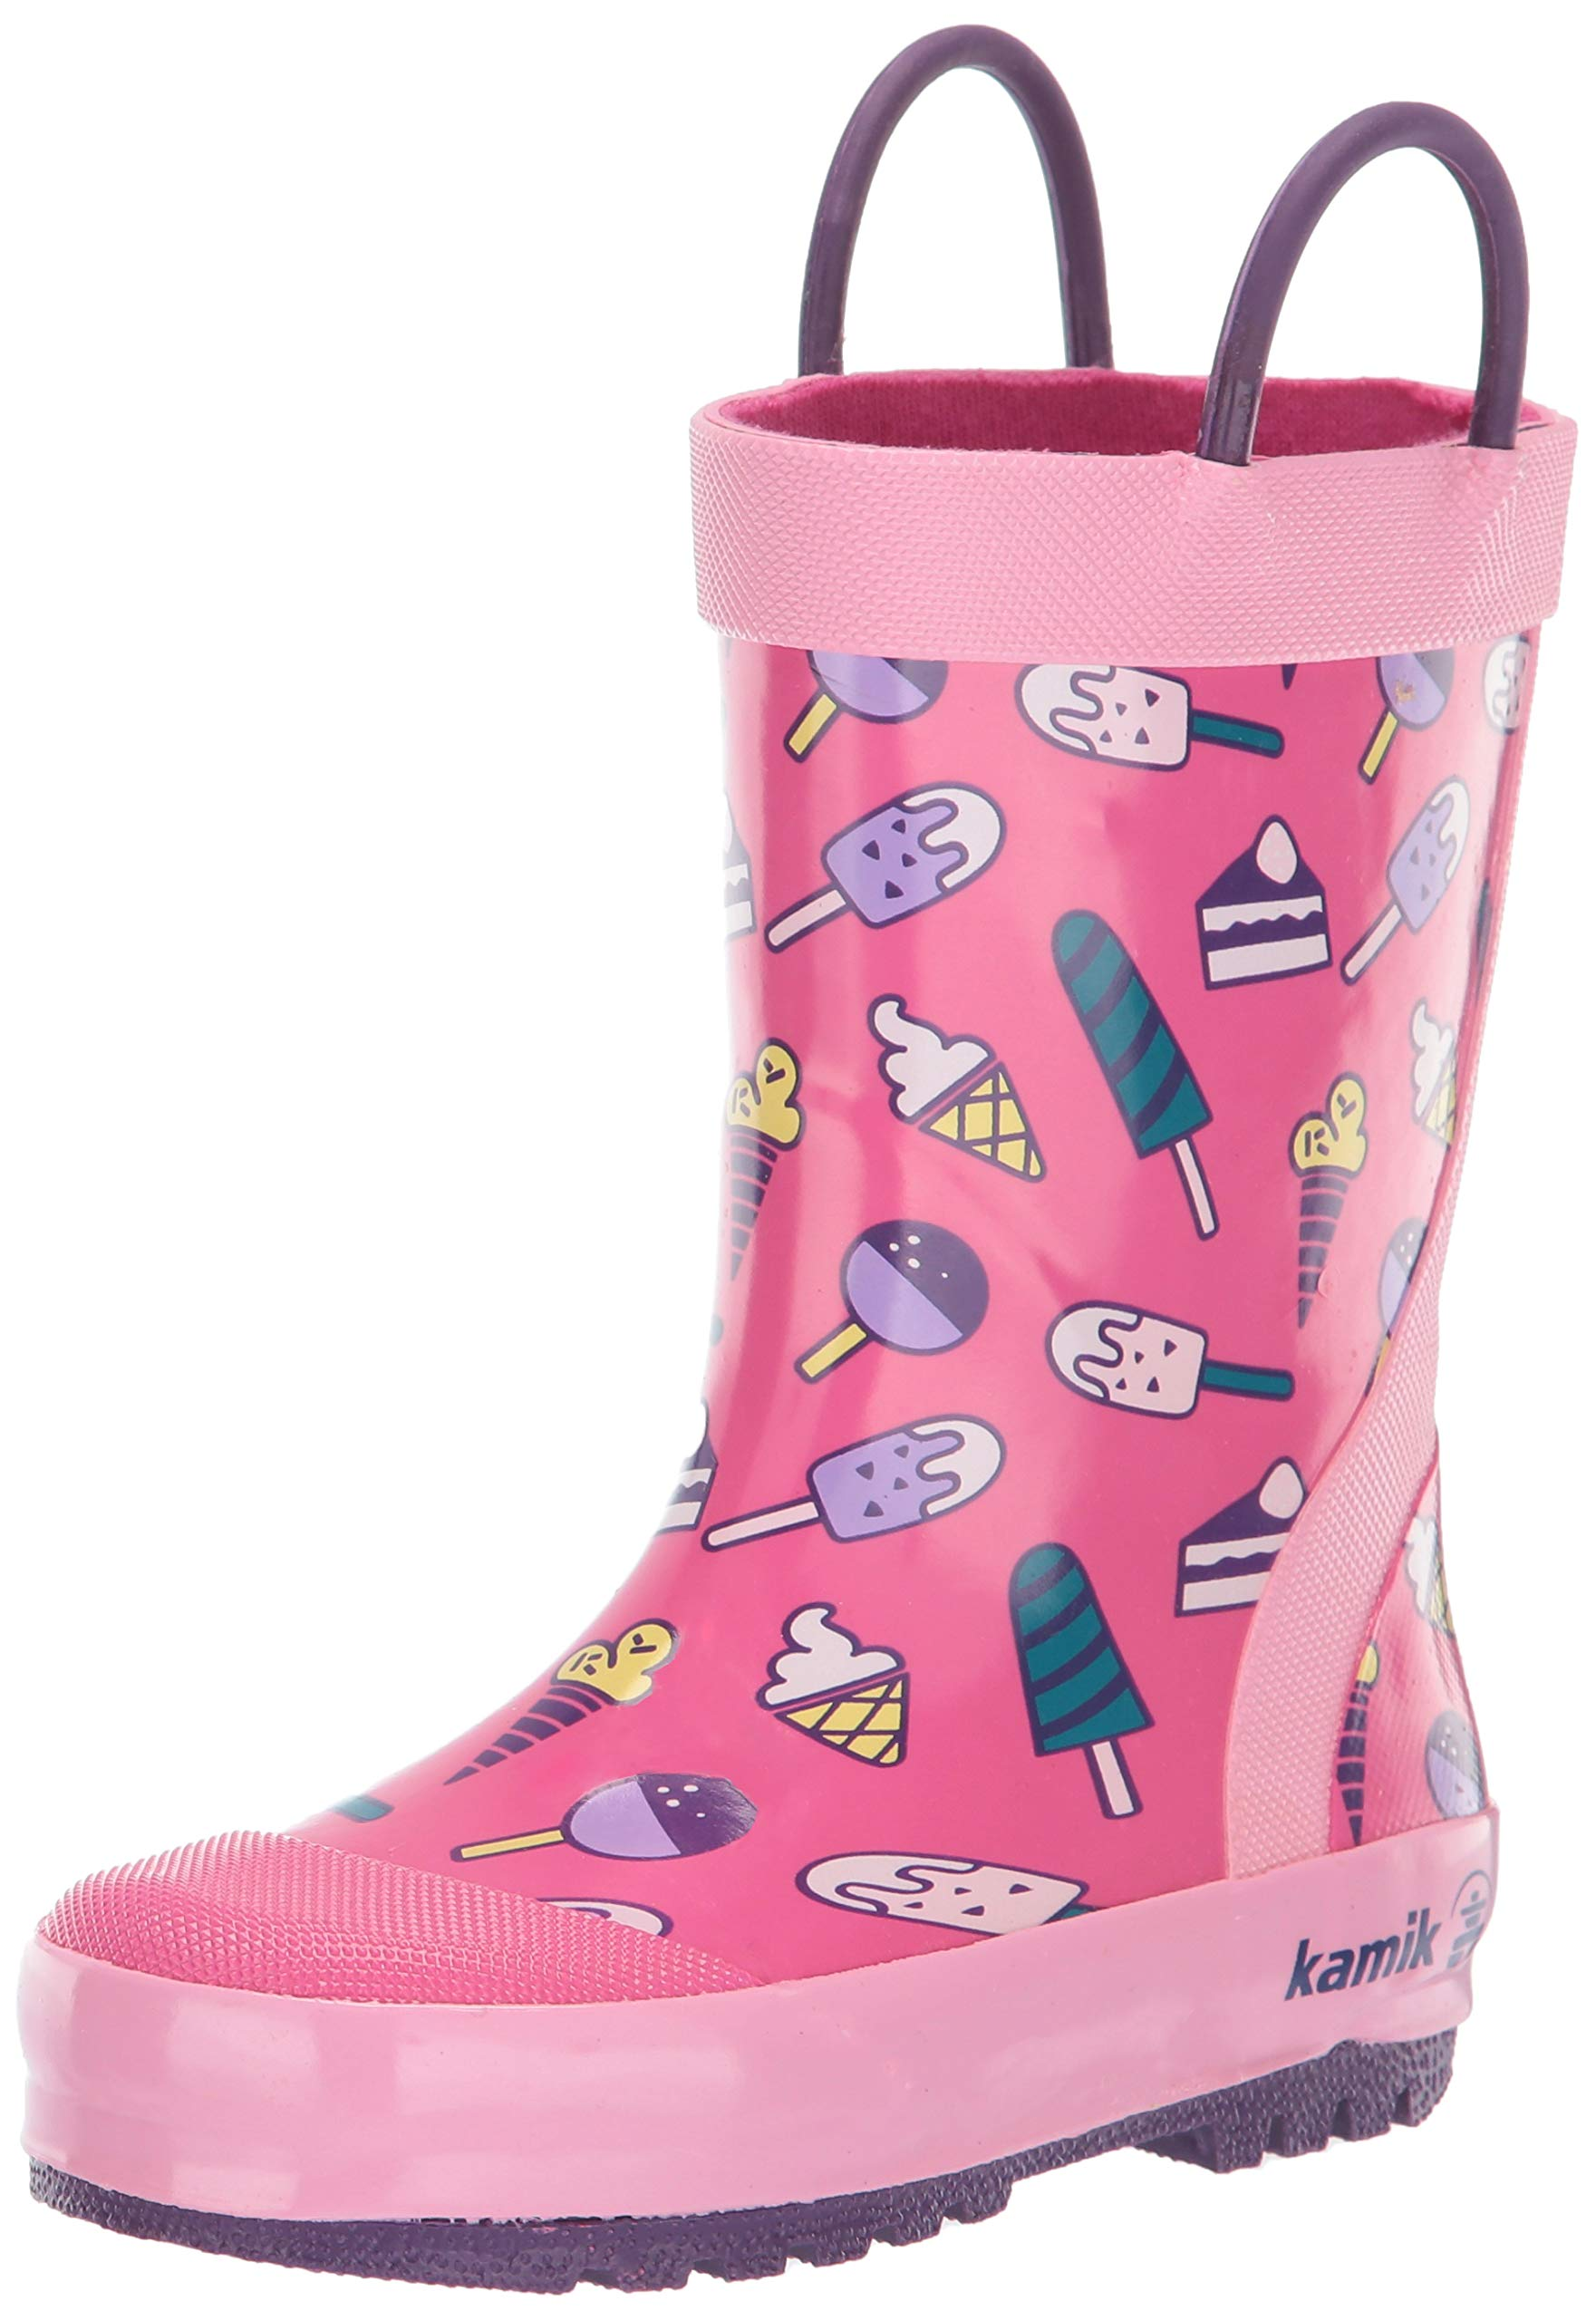 Kamik Girls' Sweets Rain Boot, Pink, 1 M US Little Kid